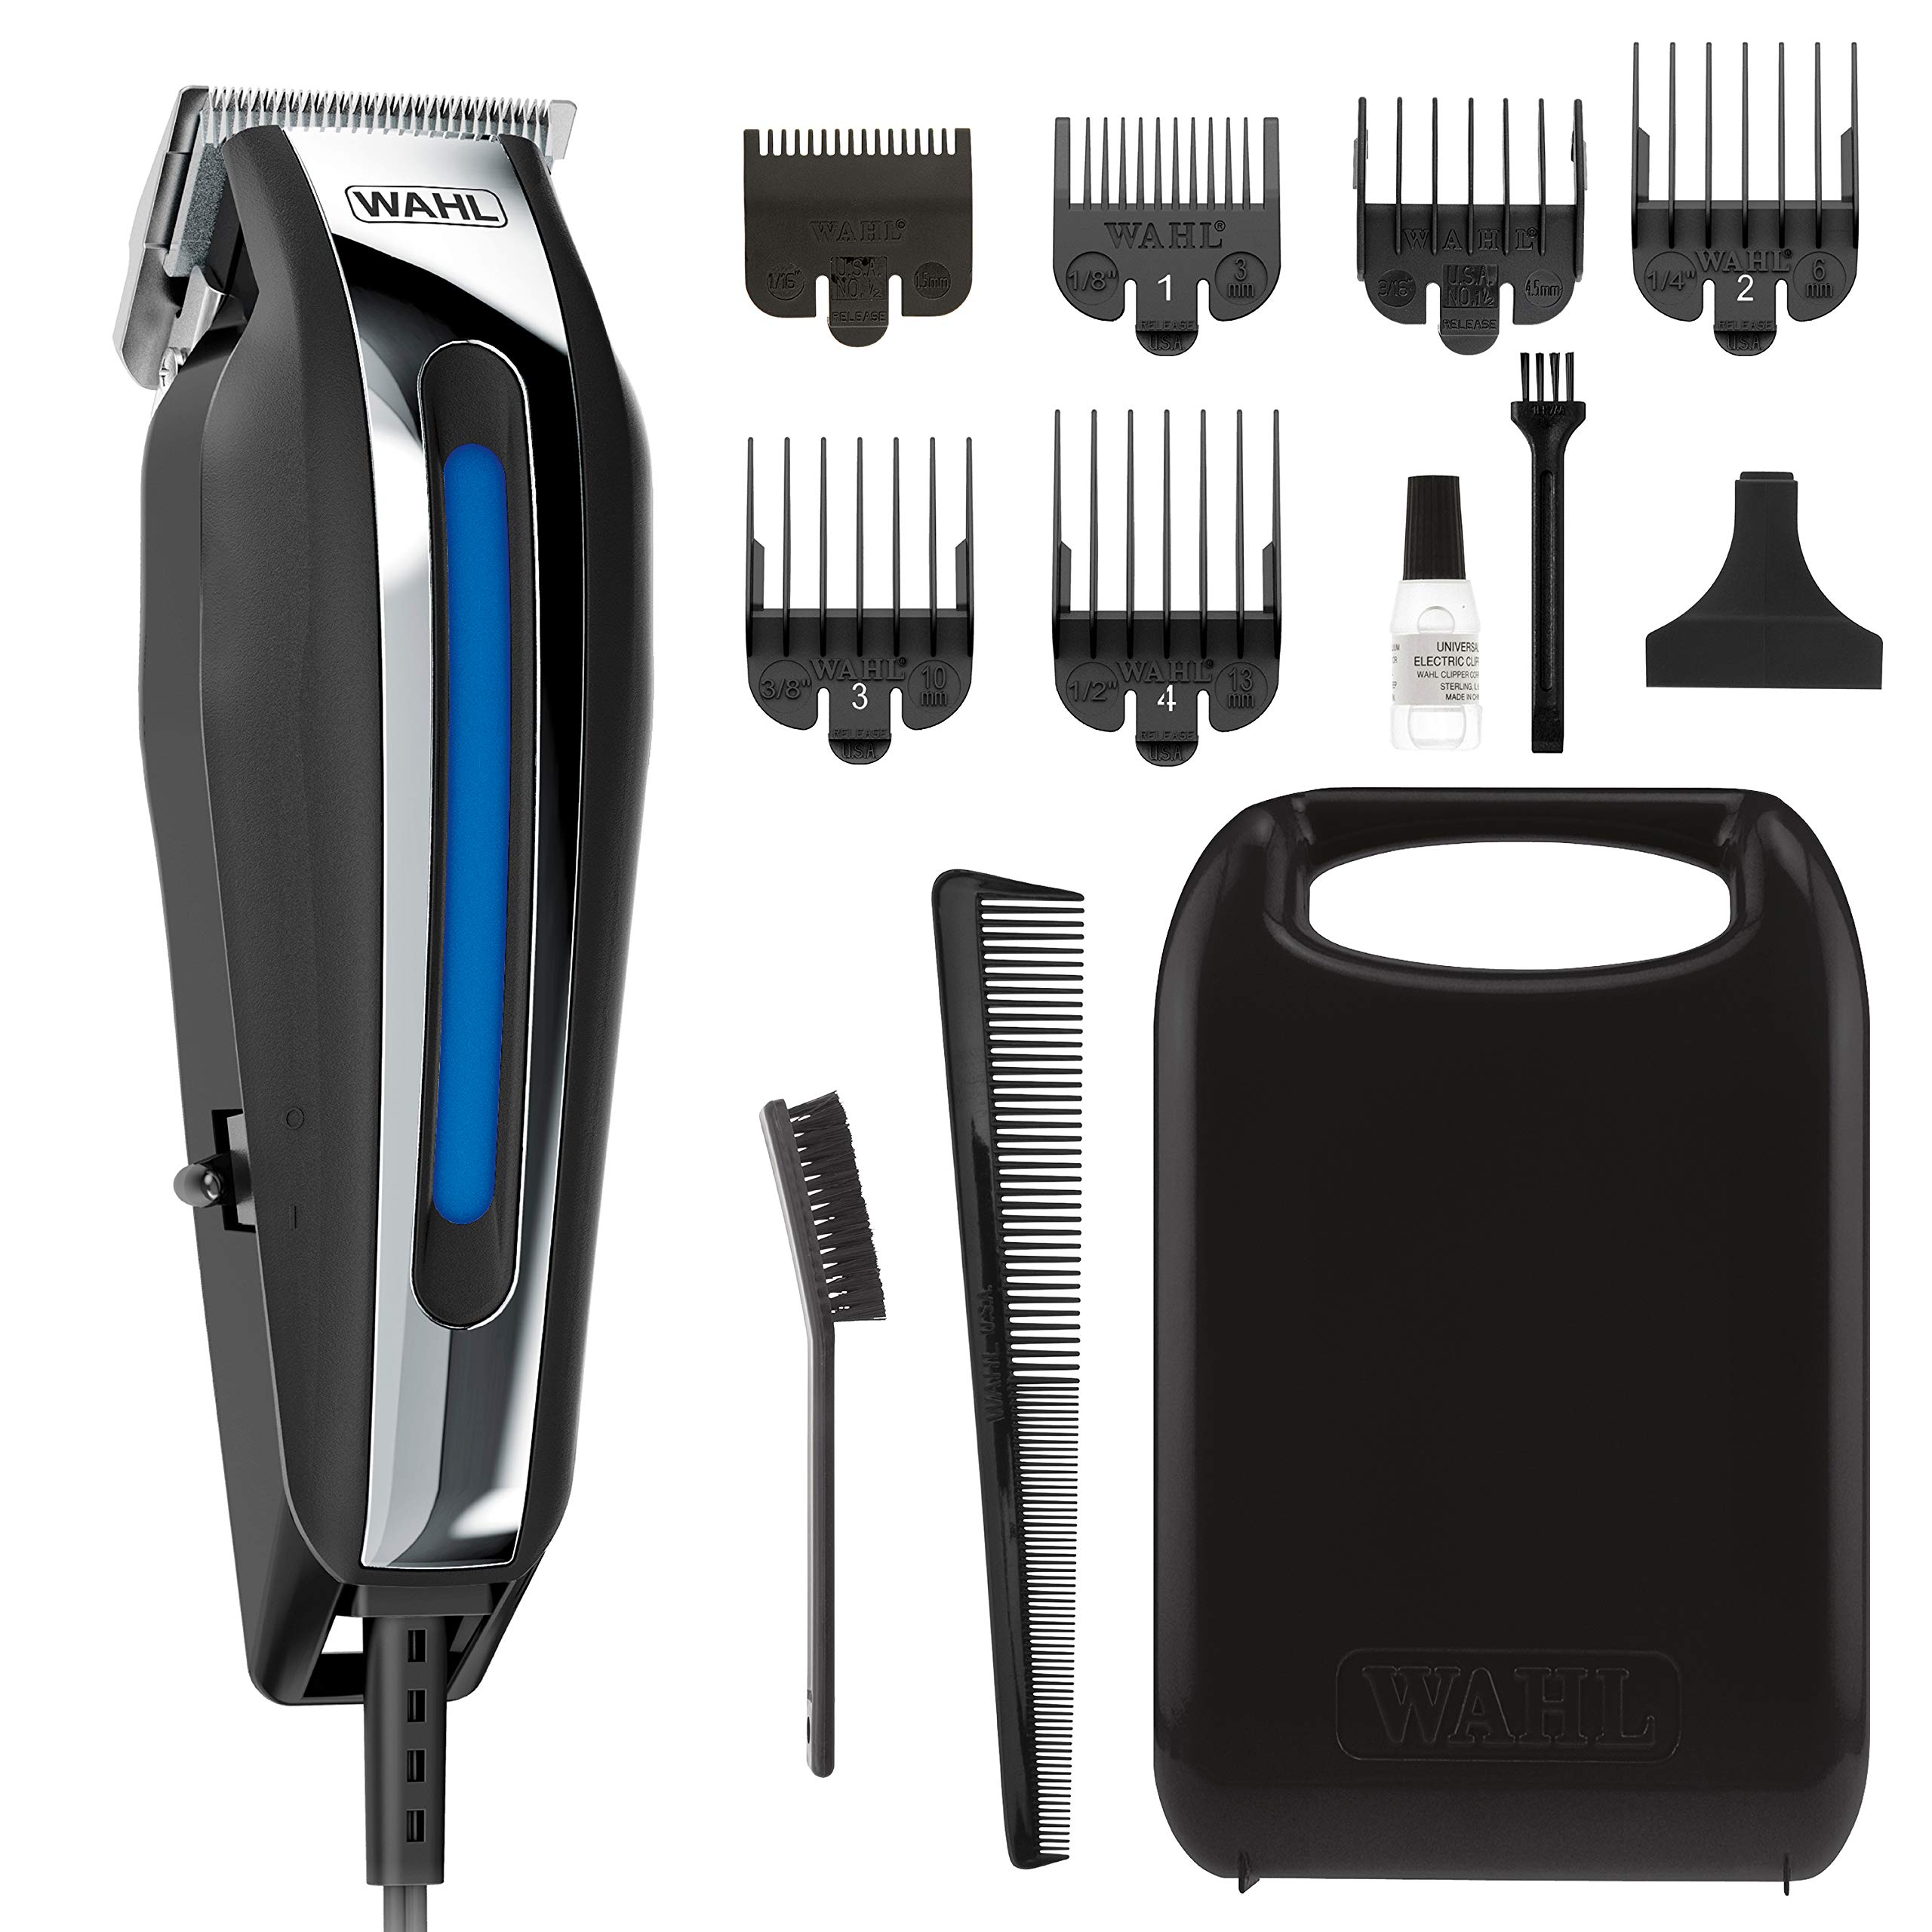 Wahl Clipper close cut Pro Haircutting Kit With Zero Overlap Blades for ultra Close Cutting, Beard Trimming, Body Grooming, & Head Shaving - 13Piece Kit by WAHL